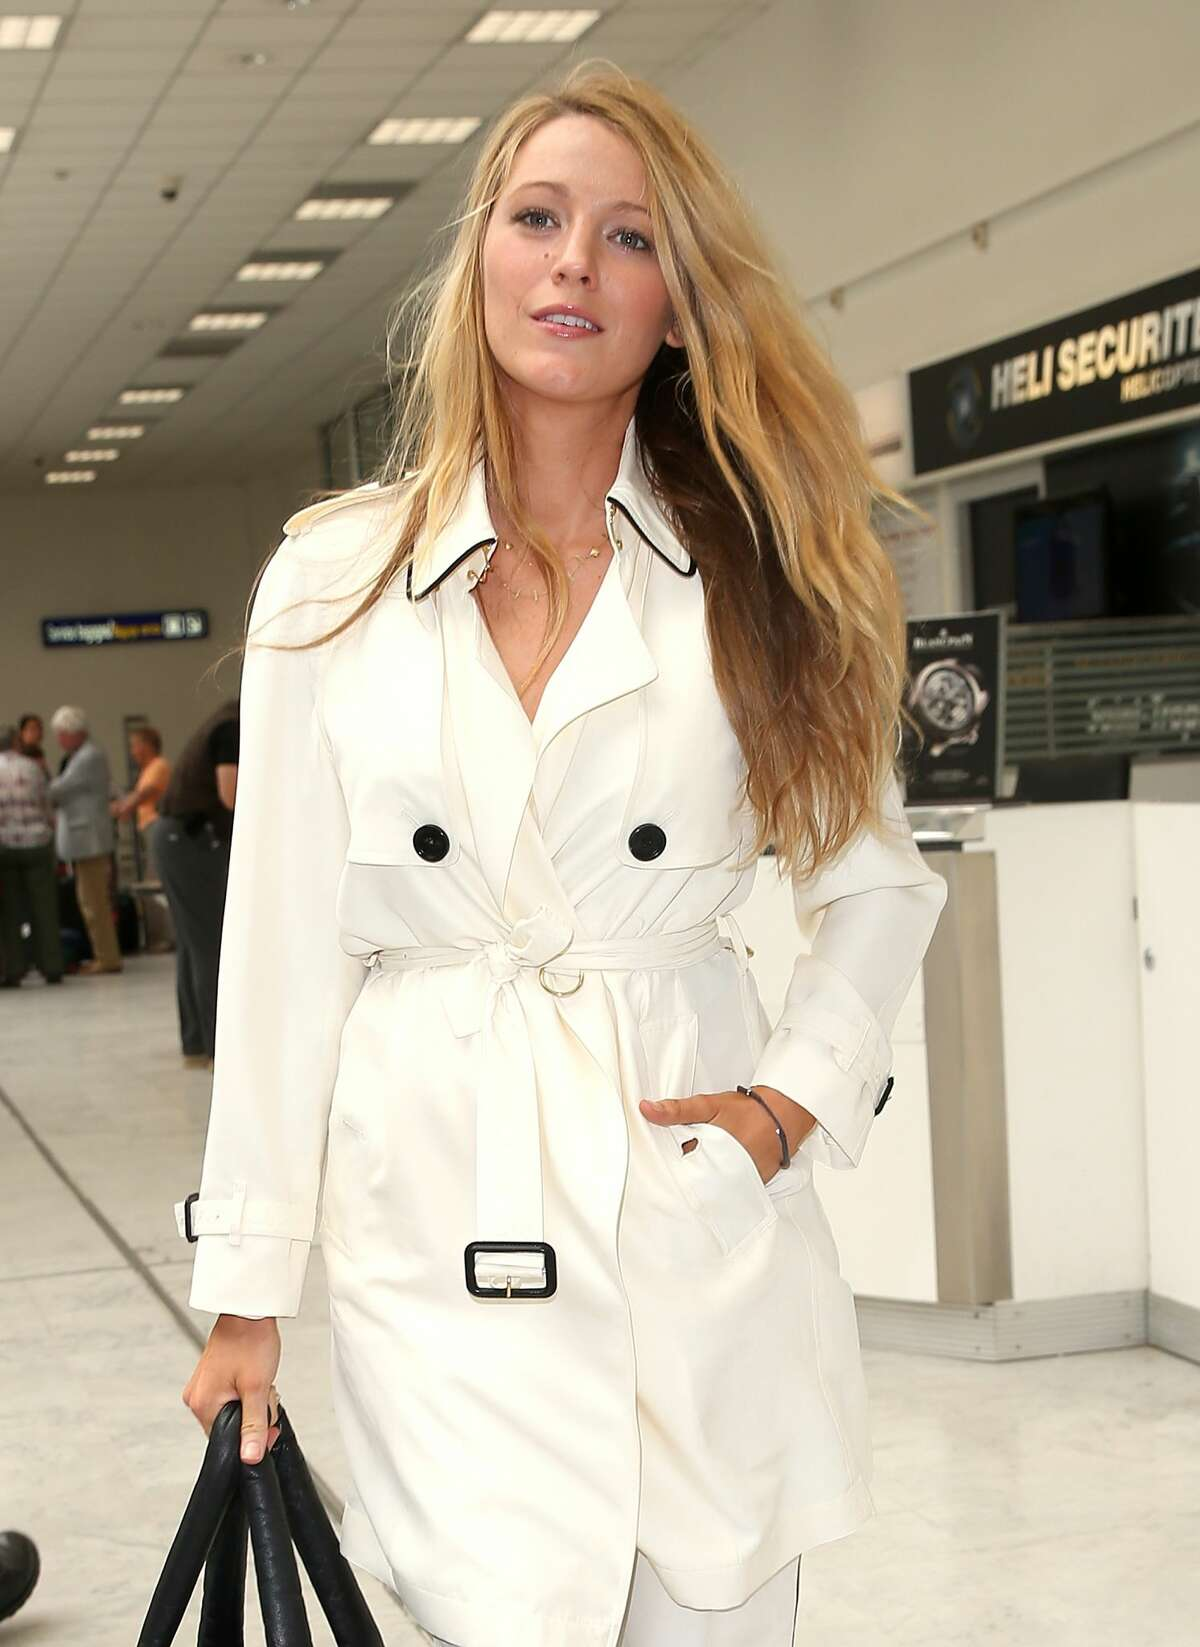 Blake Lively arrives at Nice airport.